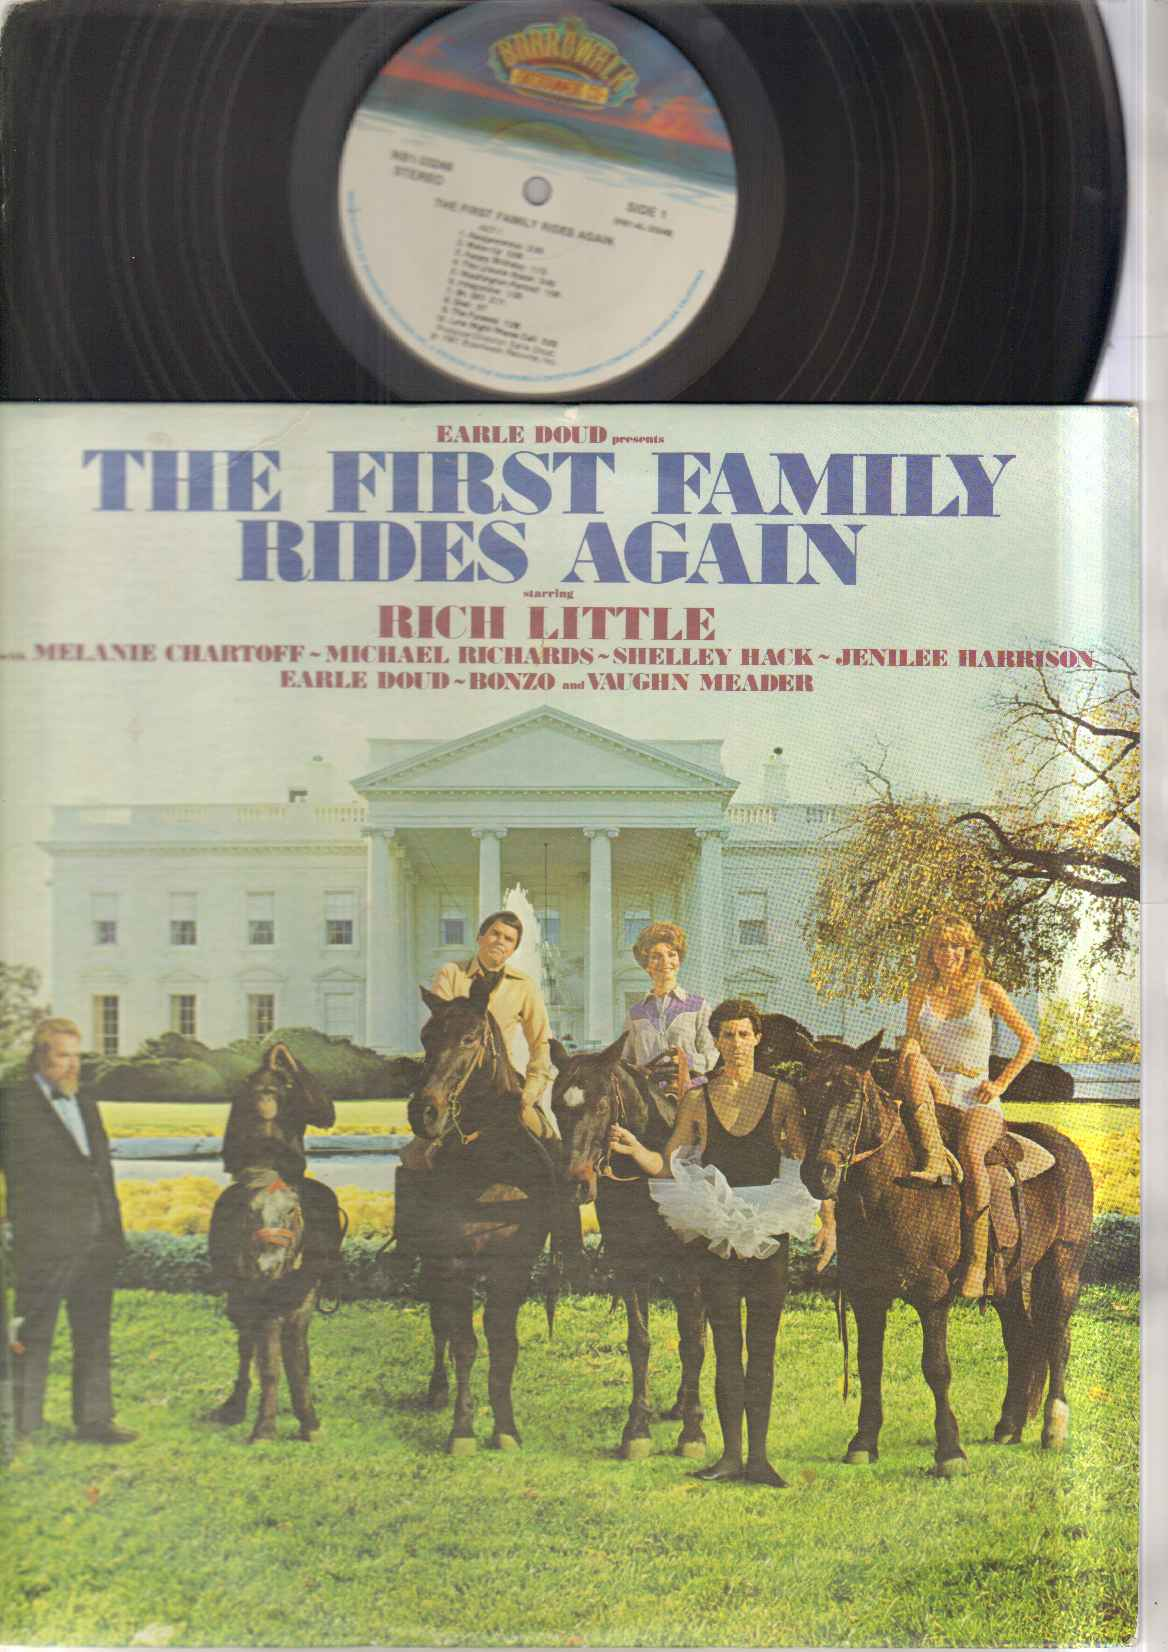 FIRST FAMILY RIDES AGAIN